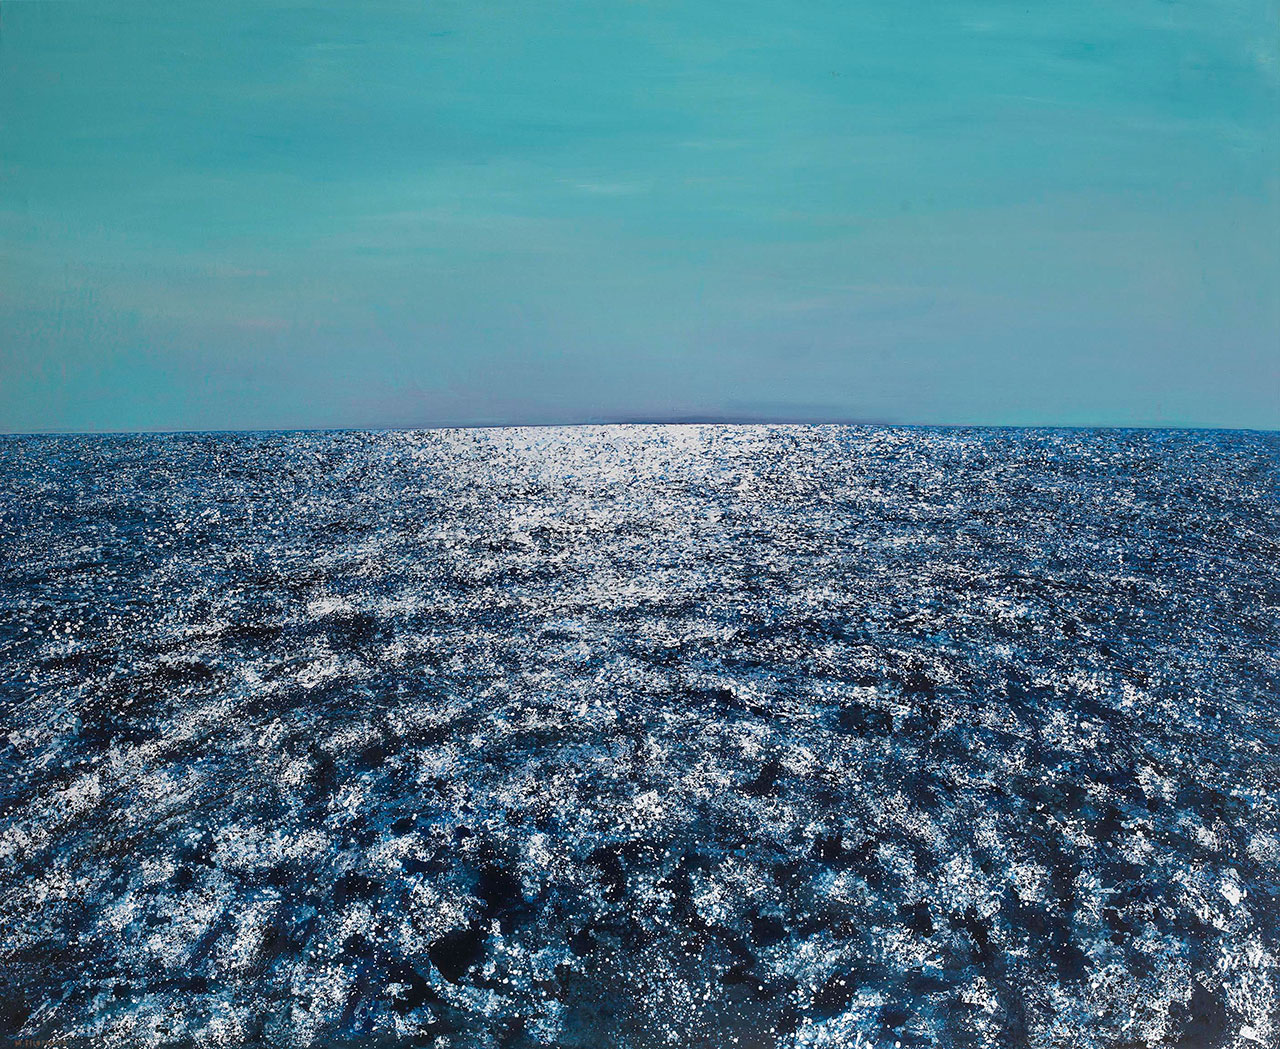 Maria Filopoulou, Sea, 2016. Oil on canvas, 160 x 200cm.